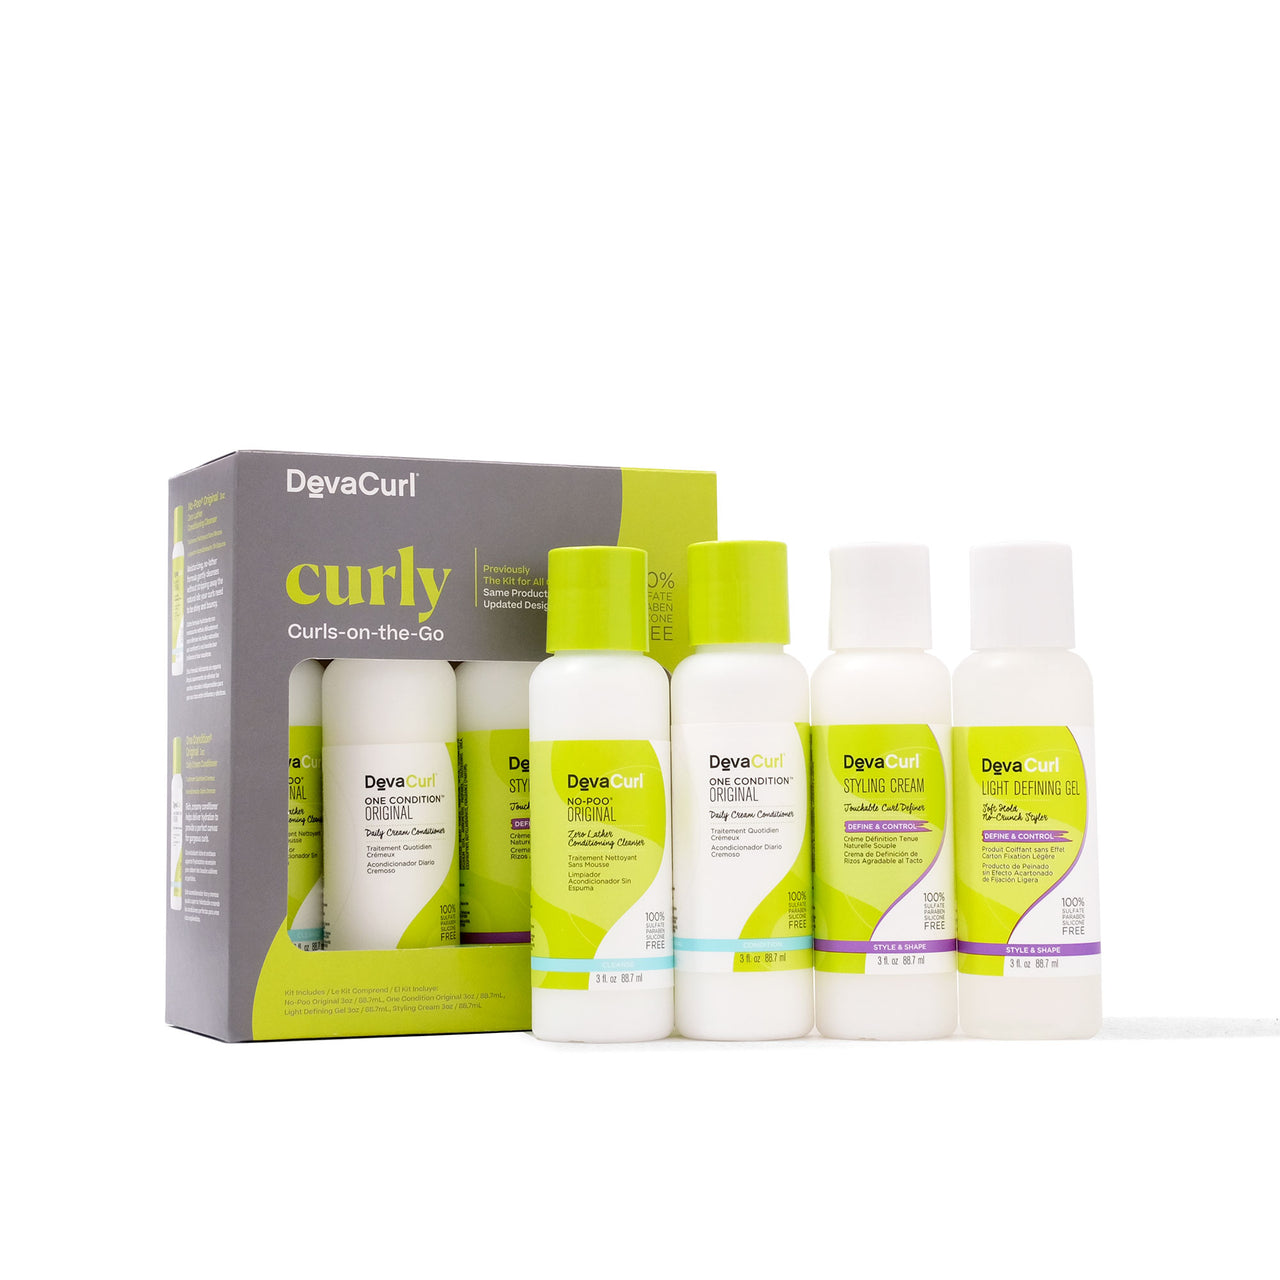 DevaCurl Curly Curls-On-The-Go box and individual bottles version 1